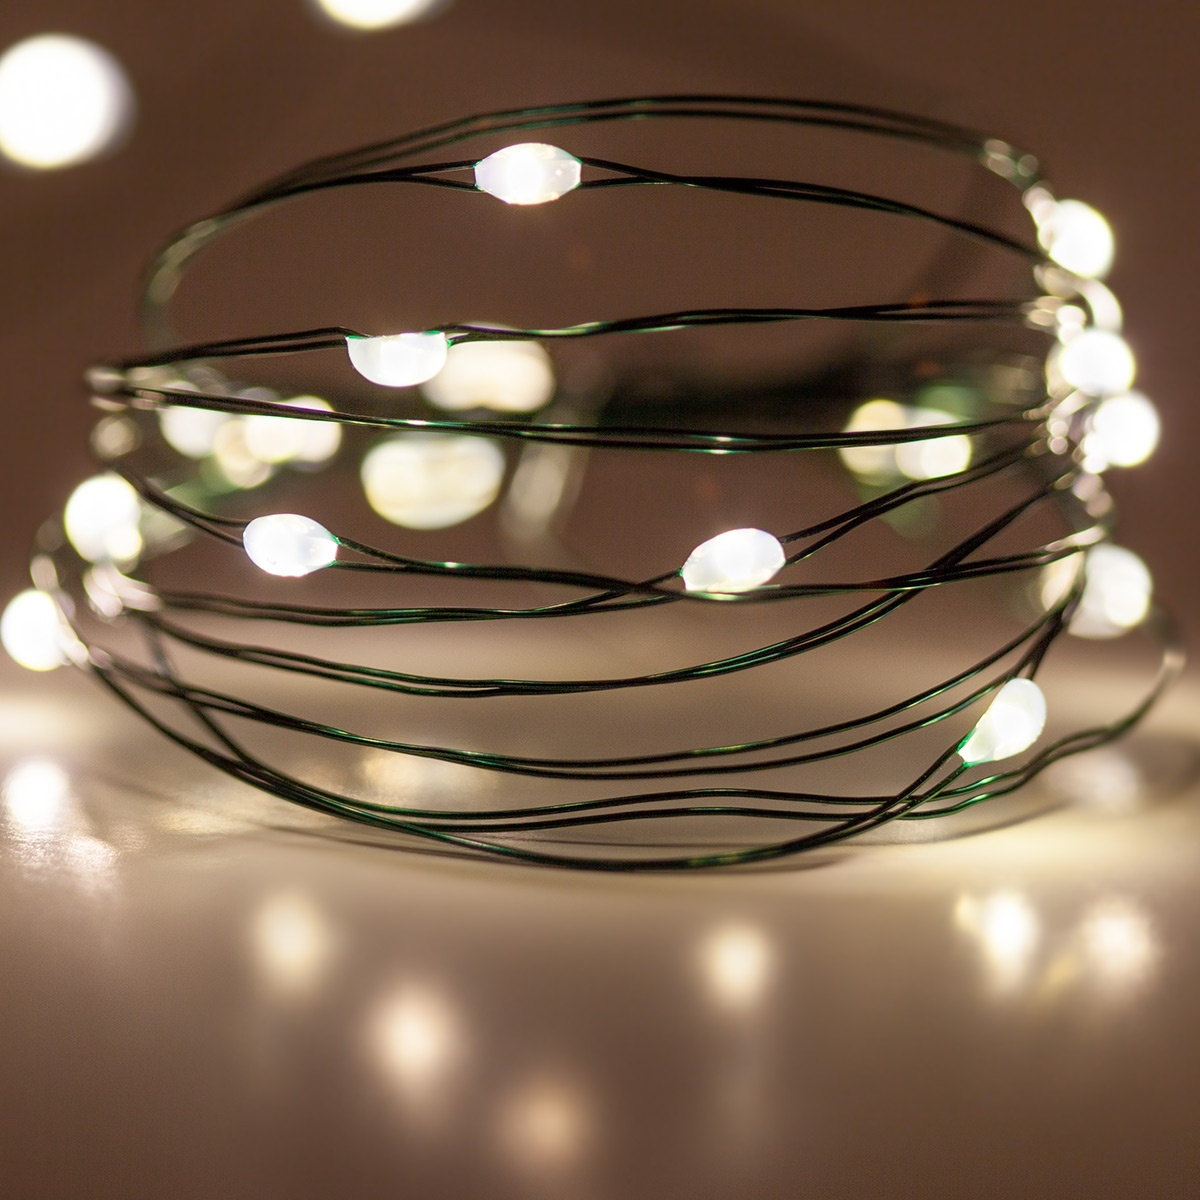 Battery Operated Lights - 18 Warm White Battery Operated LED Fairy Lights, Green Wire